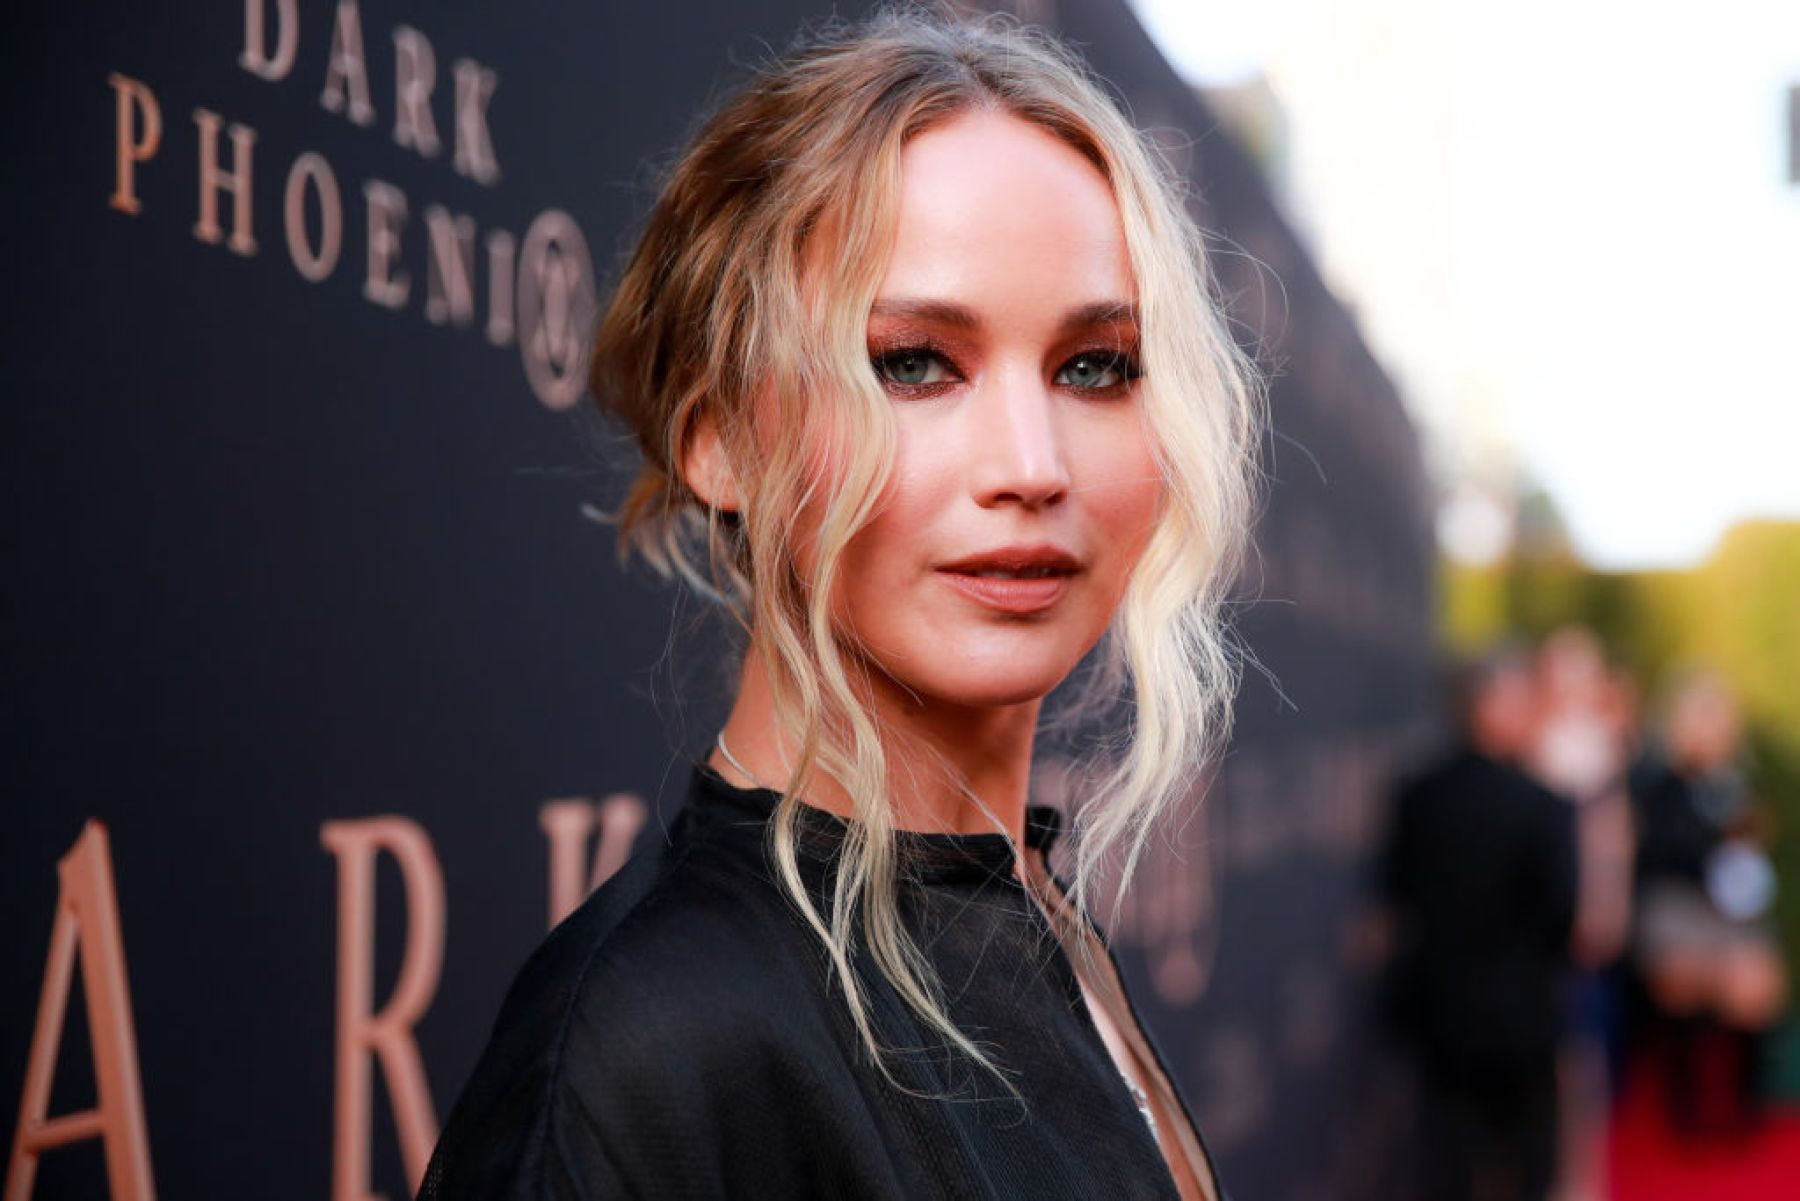 Jennifer Lawrence's family dies in devastating fire